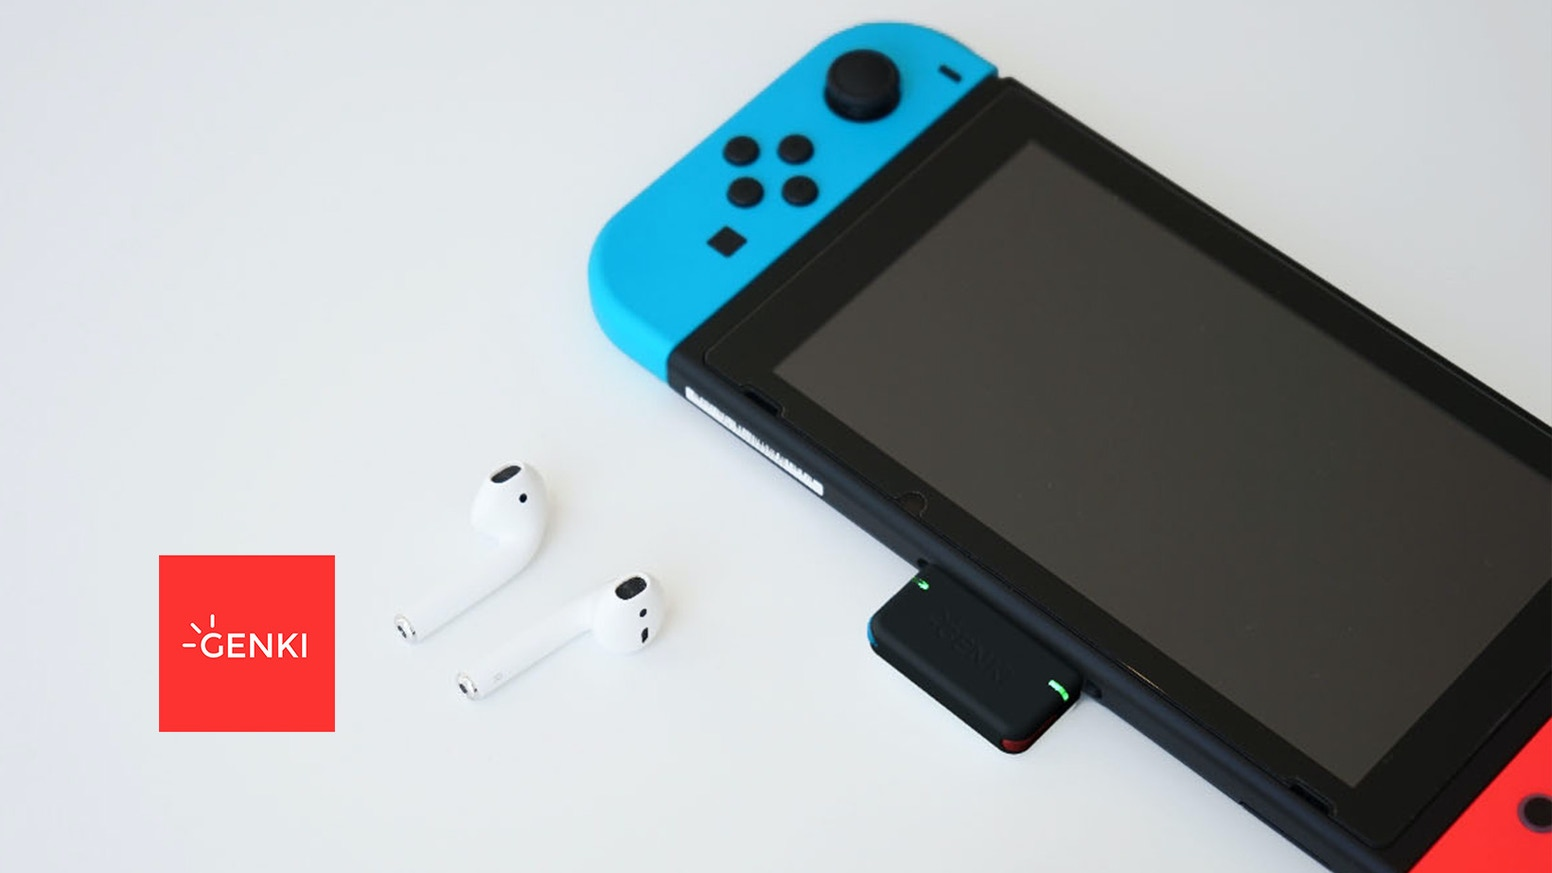 Genki Bluetooth Audio For The Nintendo Switch By Human Things